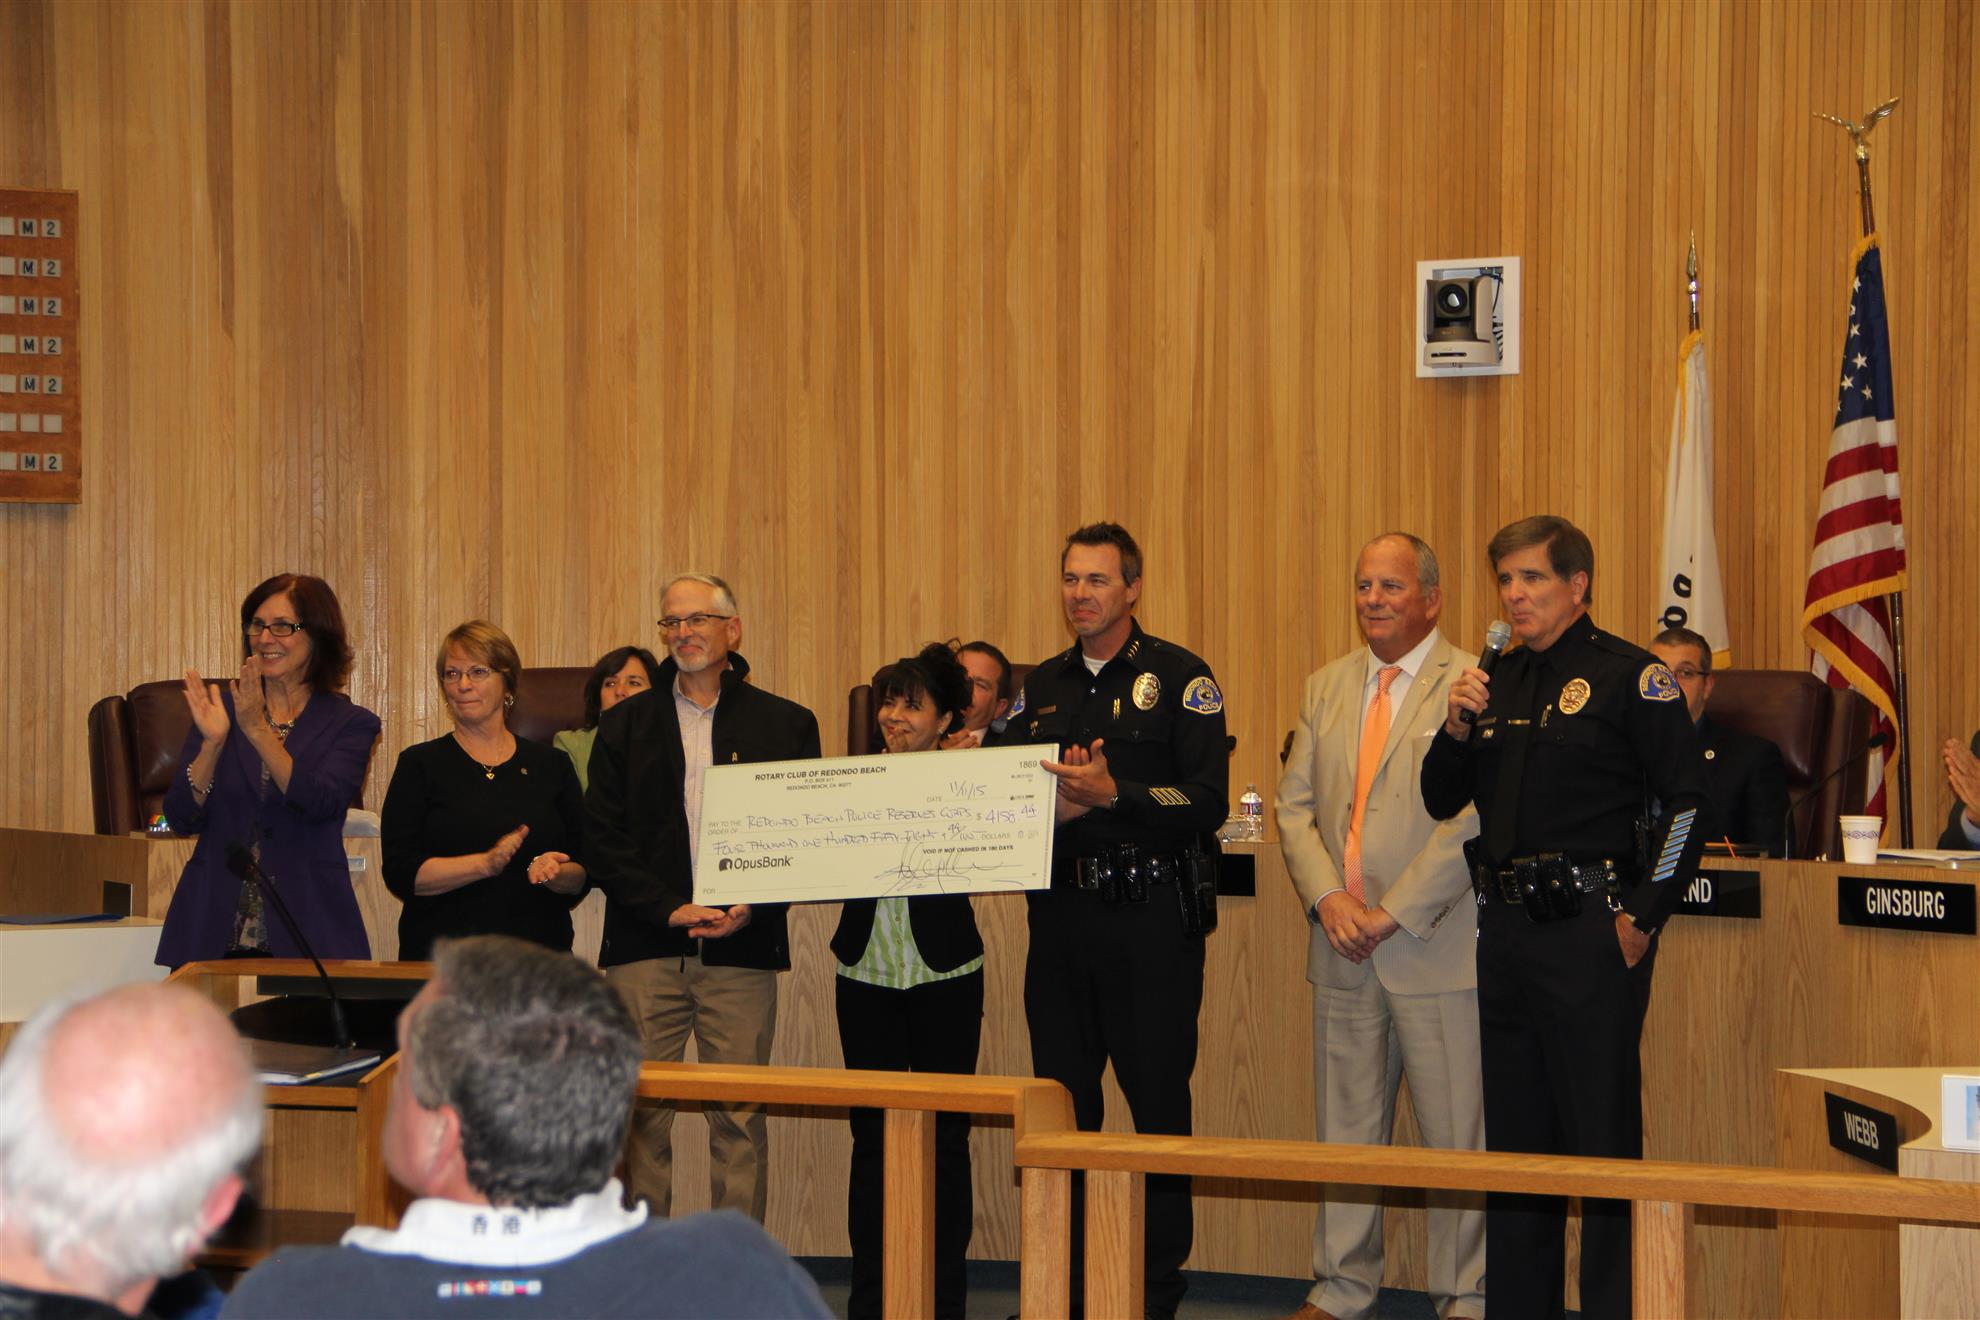 Proceeds from Fund Raising Event Presented to RB Police